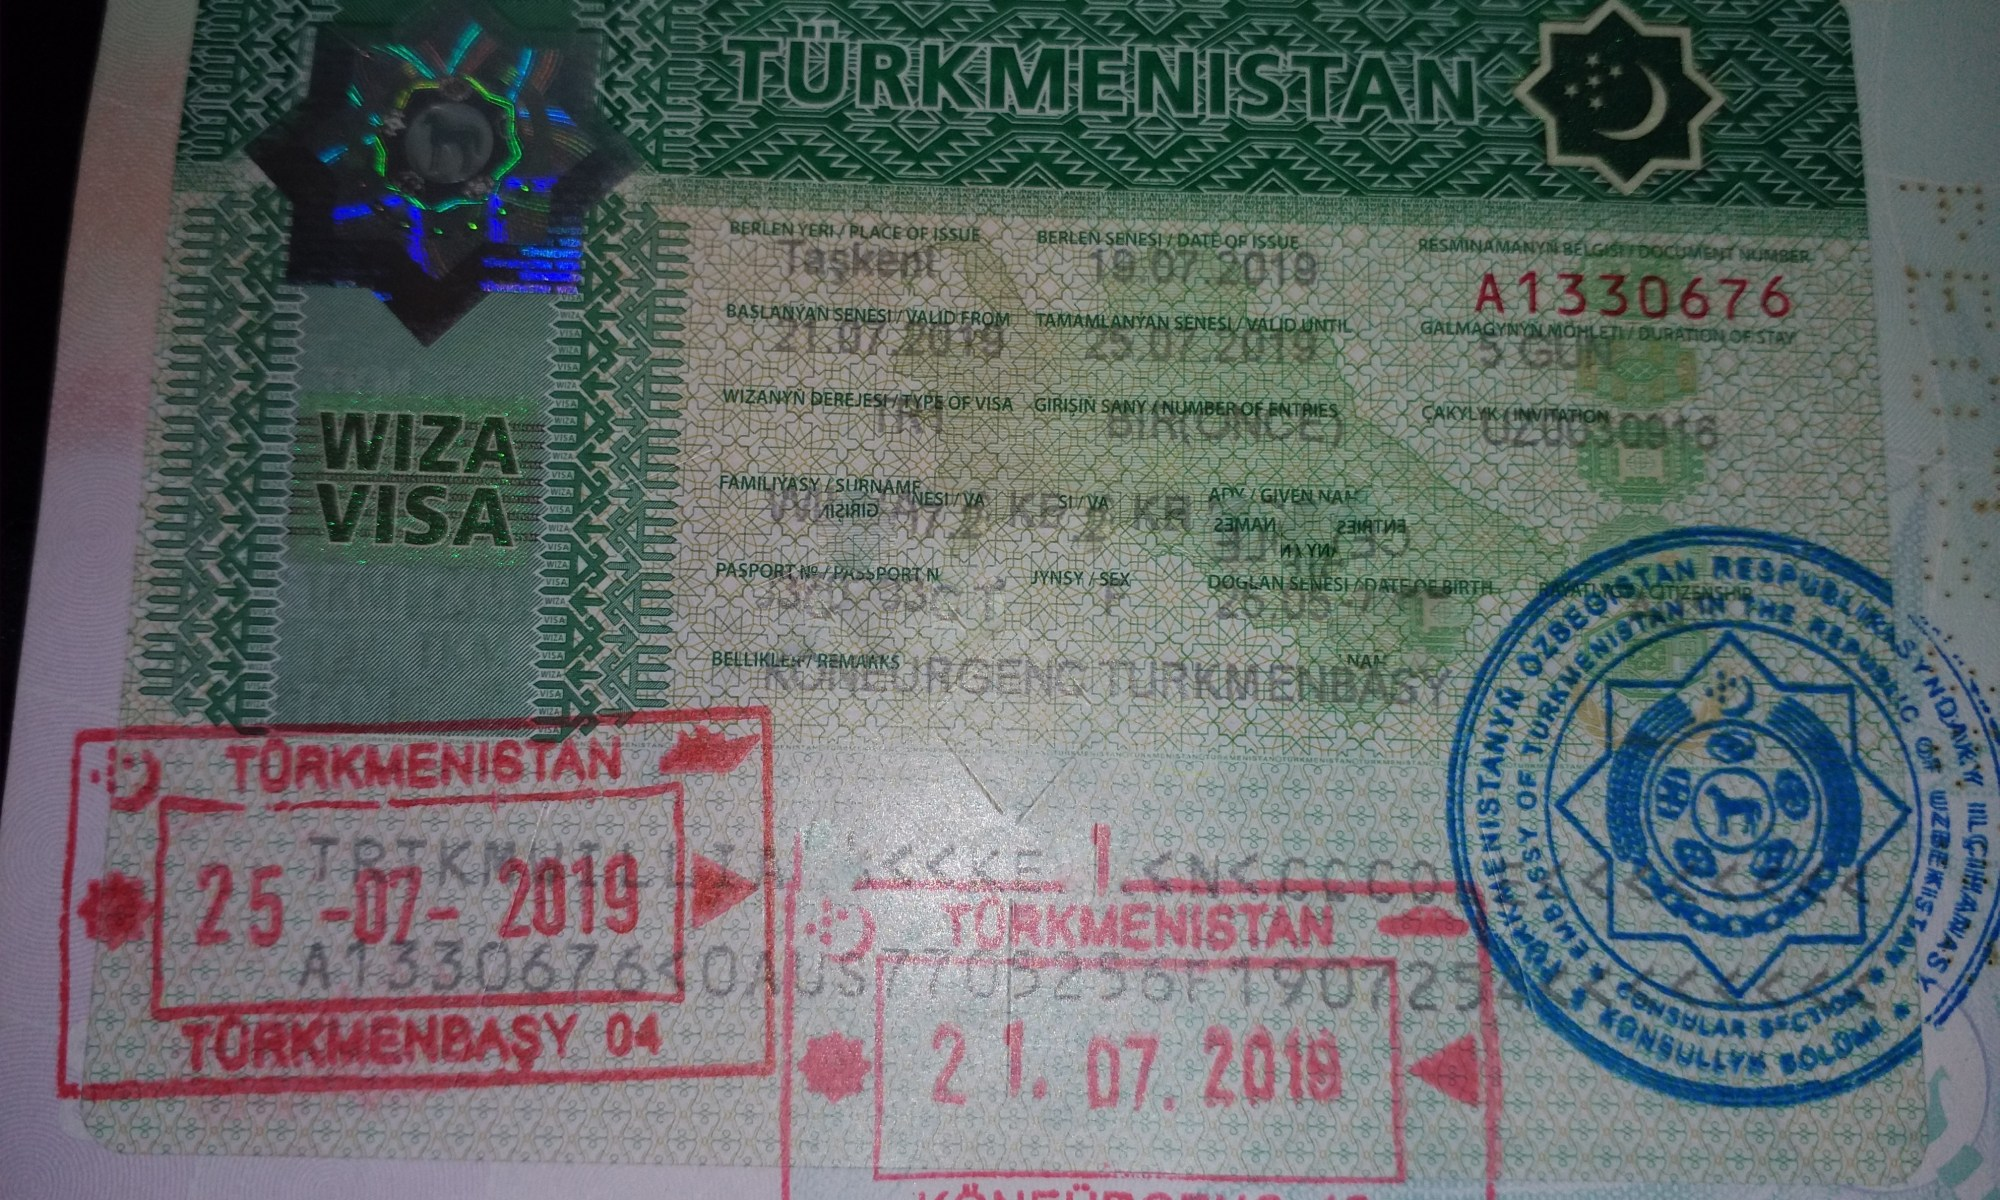 K in Motion Travel Blog. Travel to Turkmenistan - Getting the Visa. Turkmenistan Visa with Entry and Exit Stamps